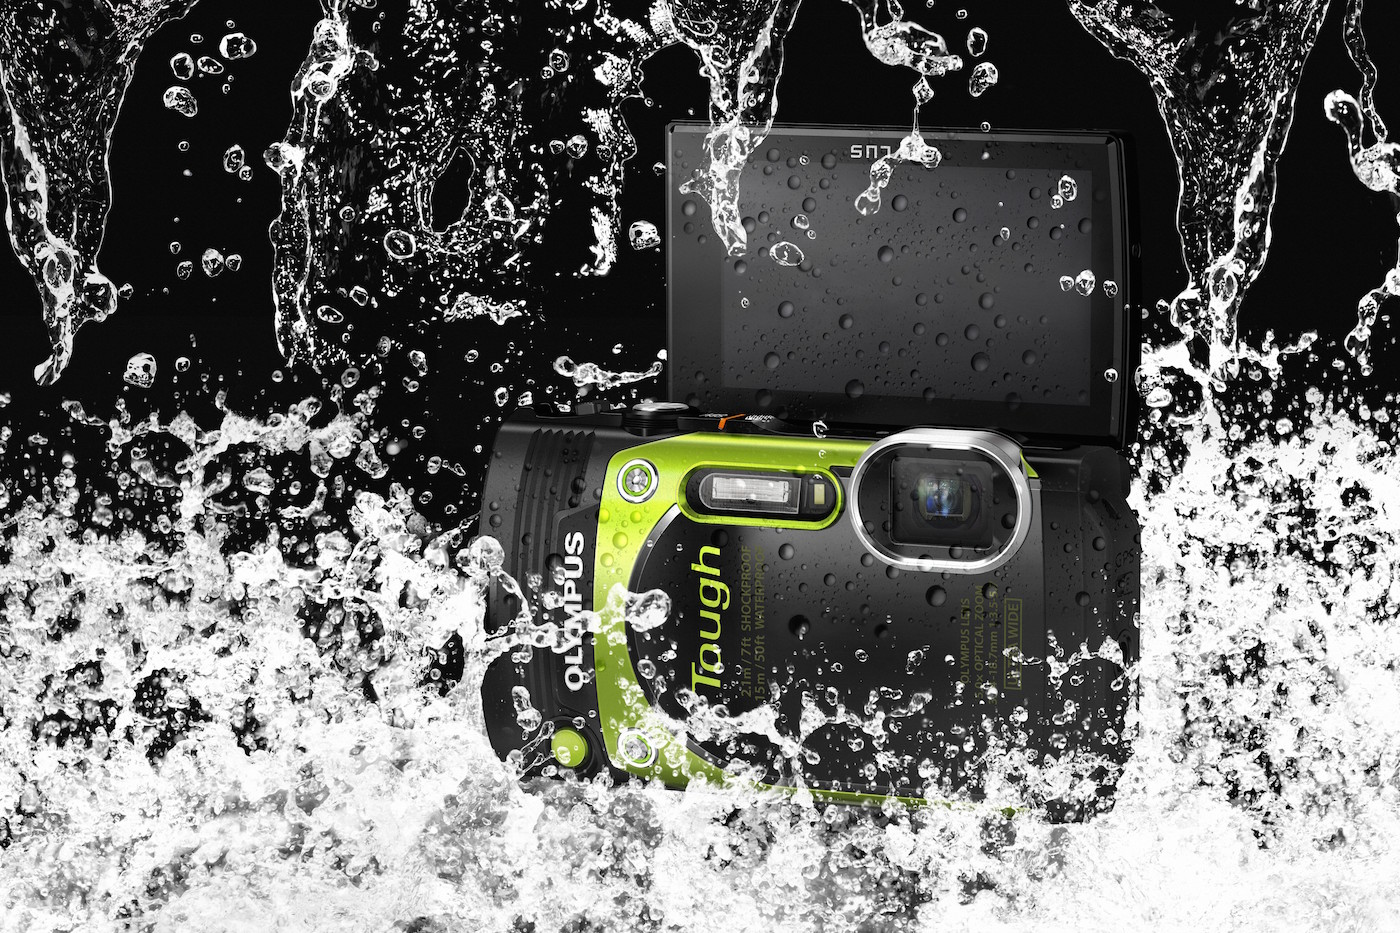 Olympus outs the Stylus TG-870, a ruggedized compact camera